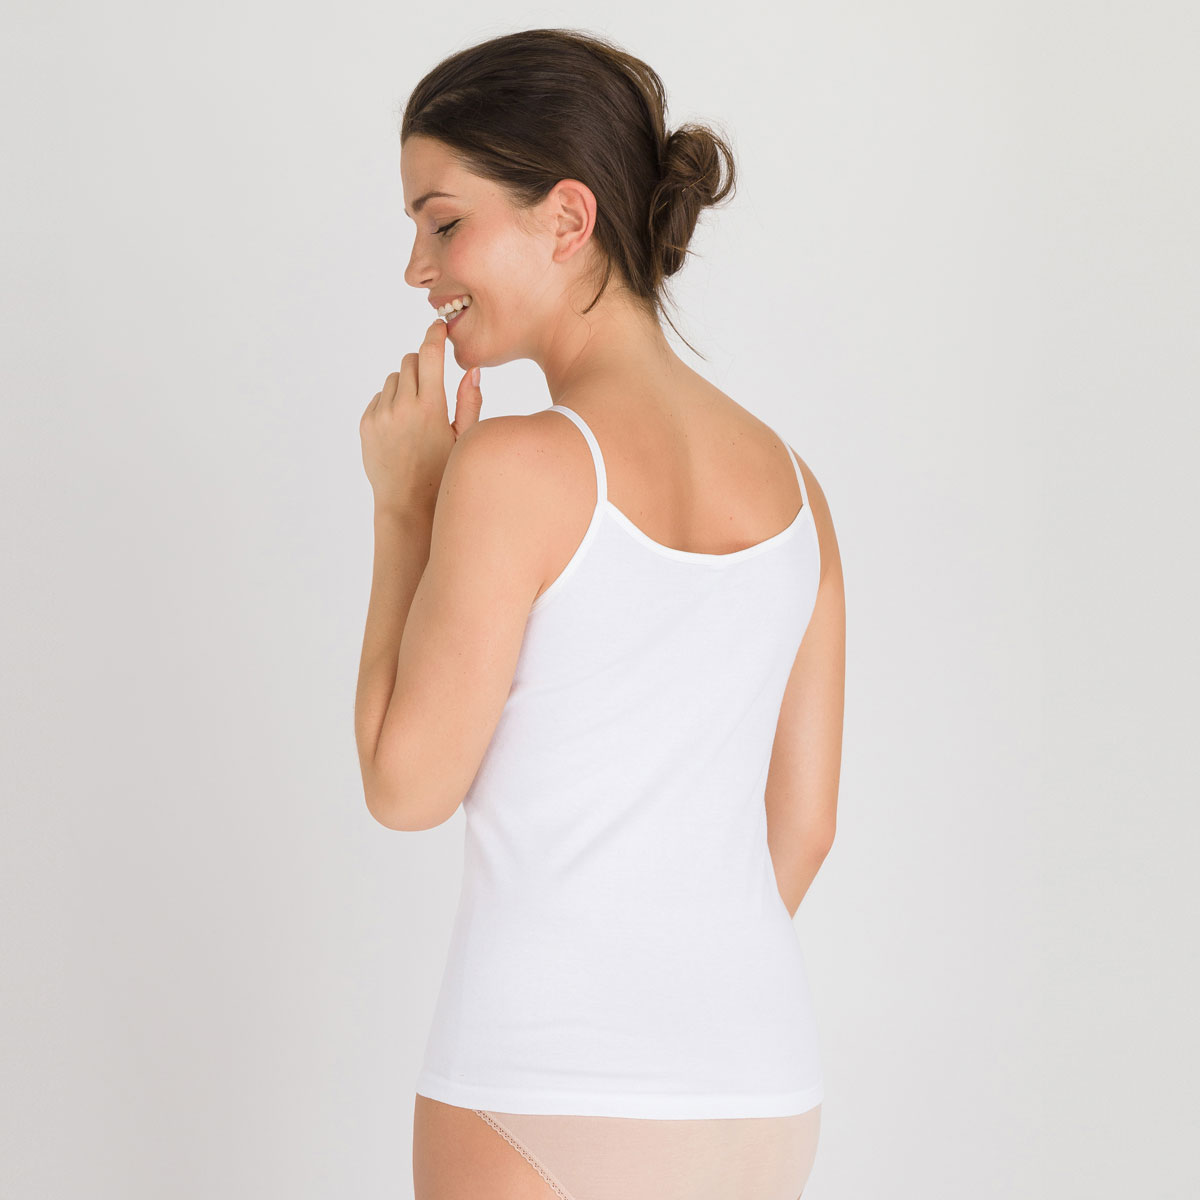 Caraco blanc - Cotton Feminine-PLAYTEX